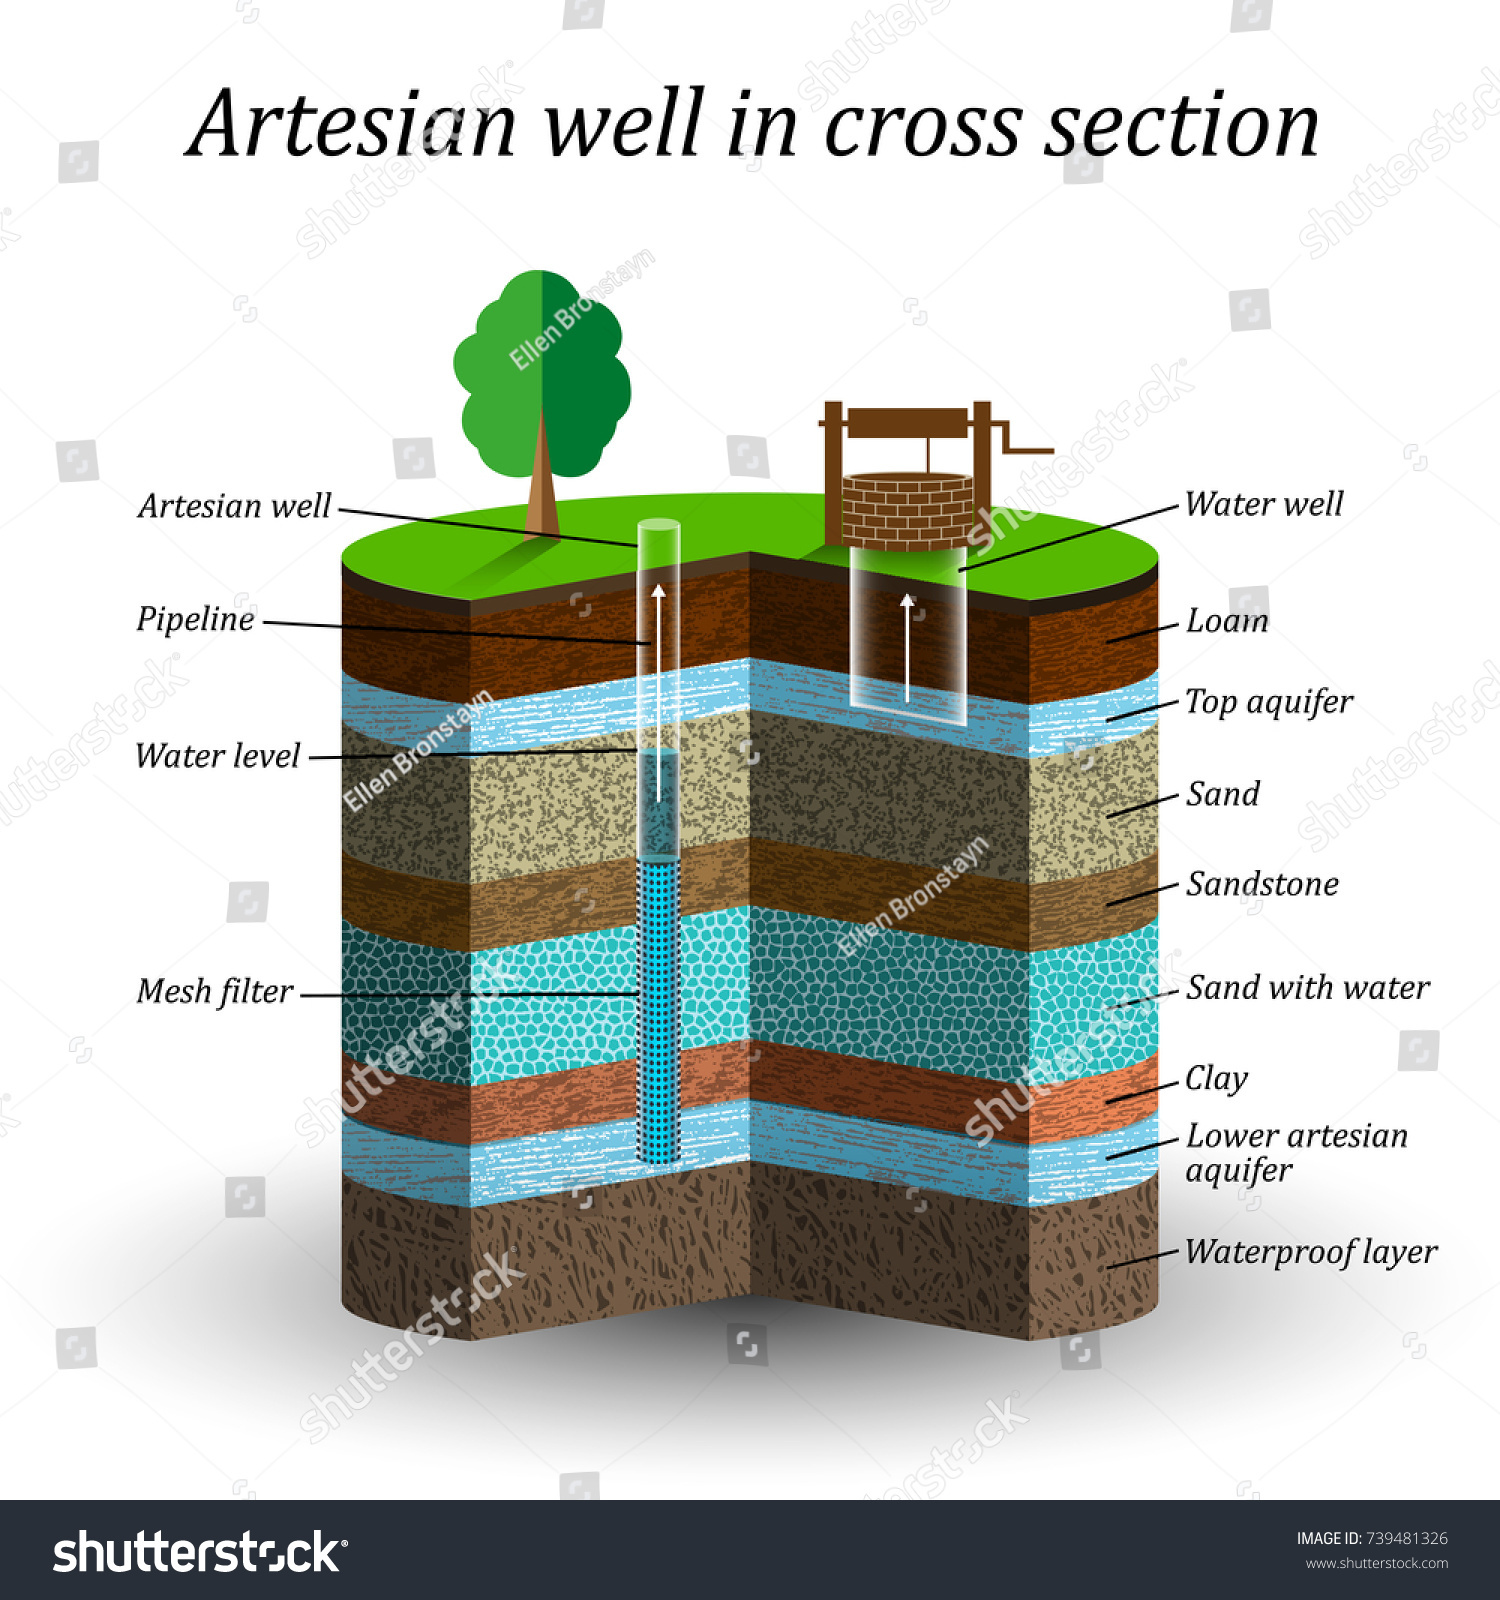 artesian water well cross section schematic stock vector (royalty water turbine schematic artesian water well in cross section, schematic education poster groundwater, sand, gravel